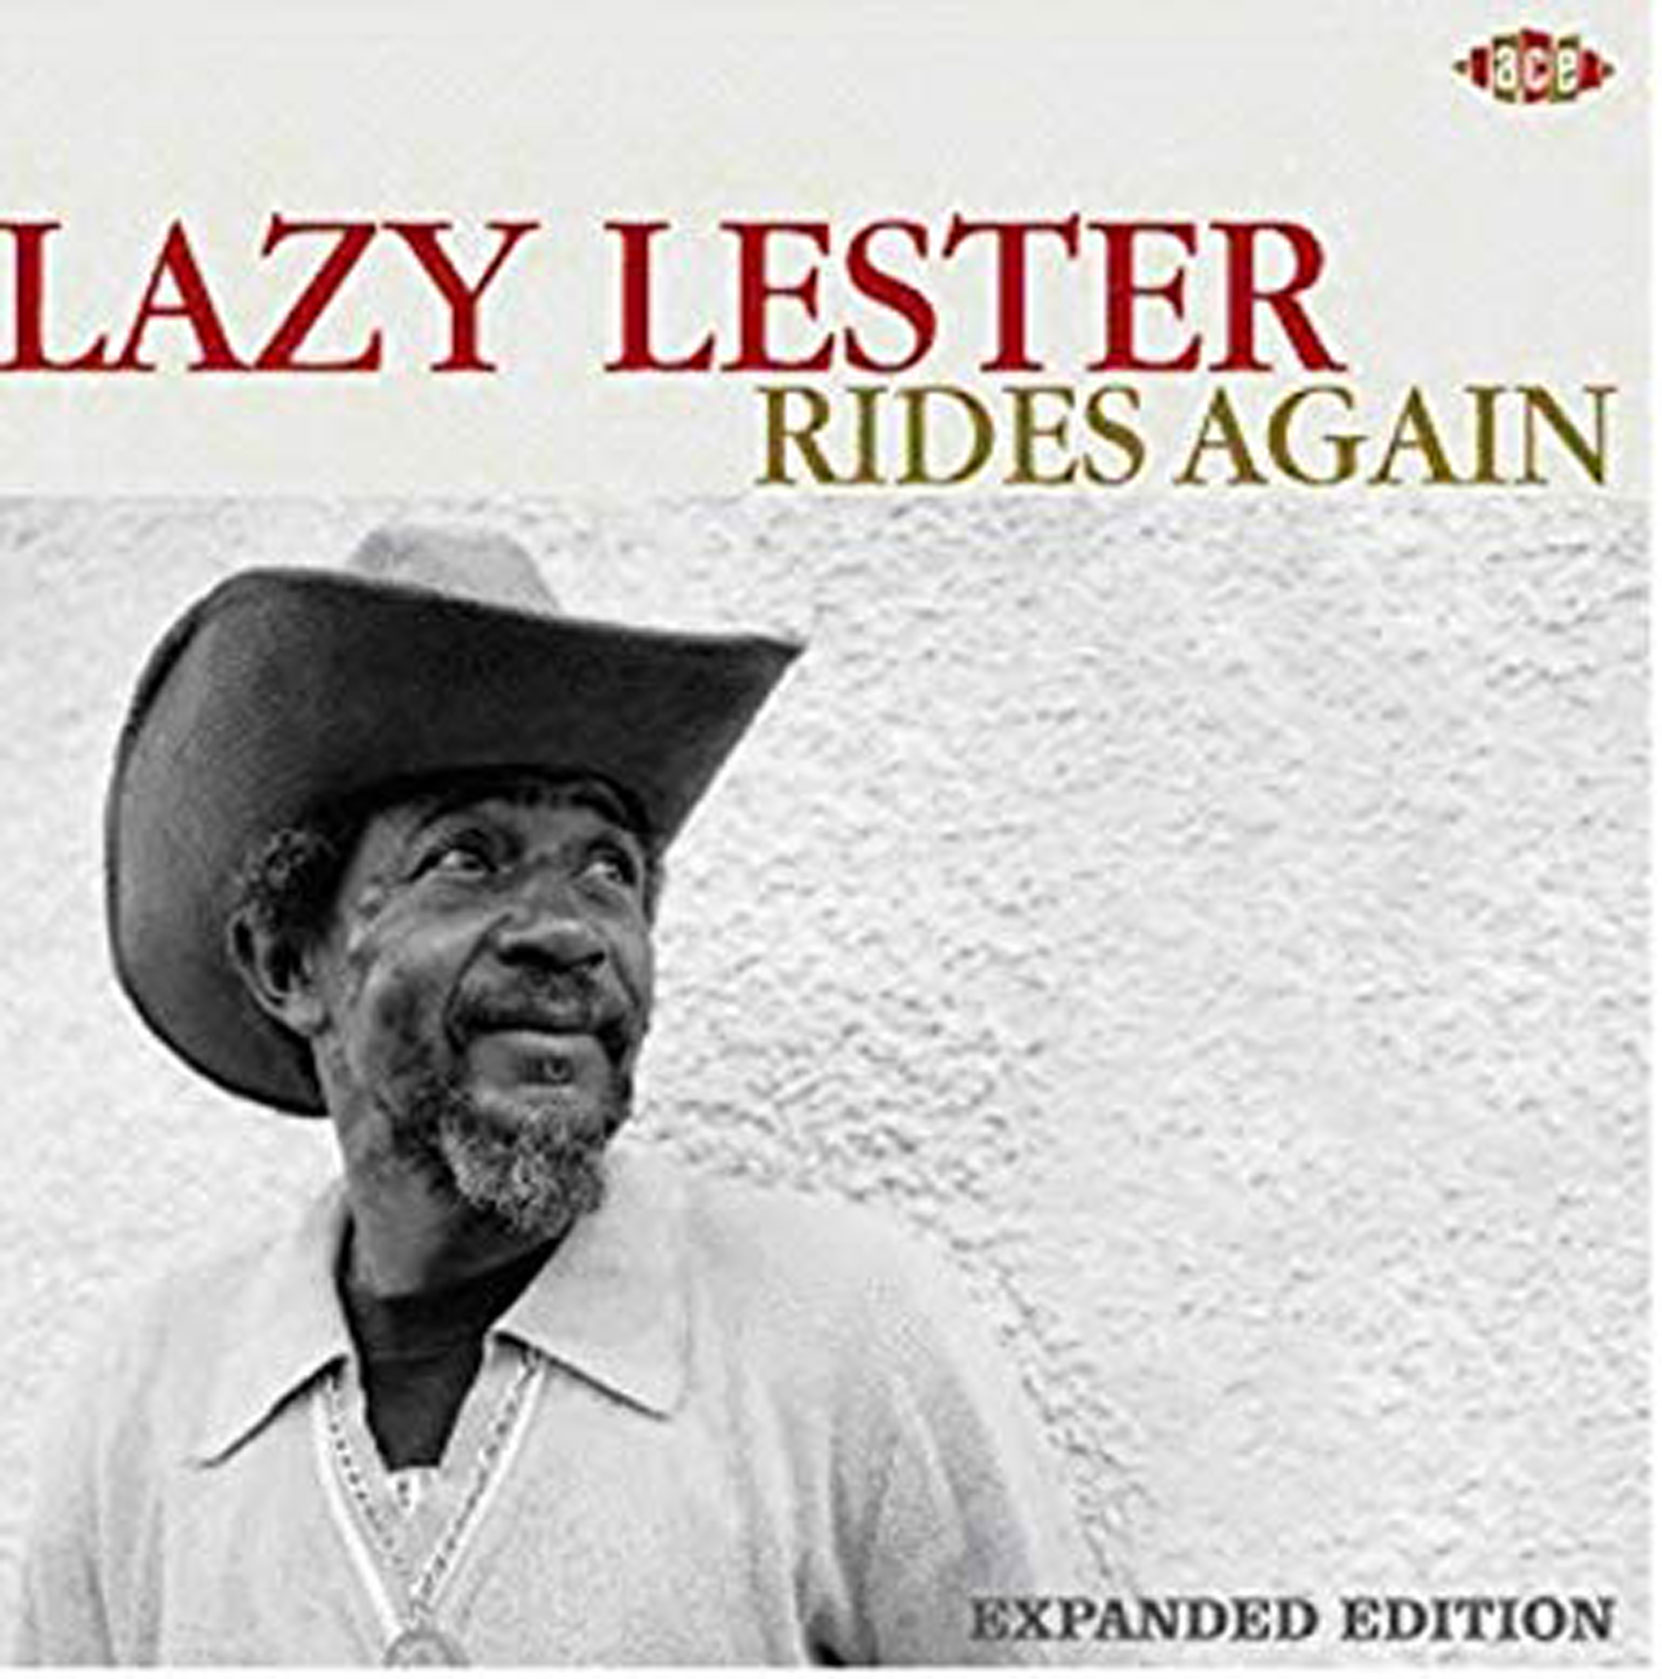 Lazy Lester - Laszy Lester Rides Again, Reissue of the original 1988 album (with bi=onus tracks) released on Ace Records. CD cover.